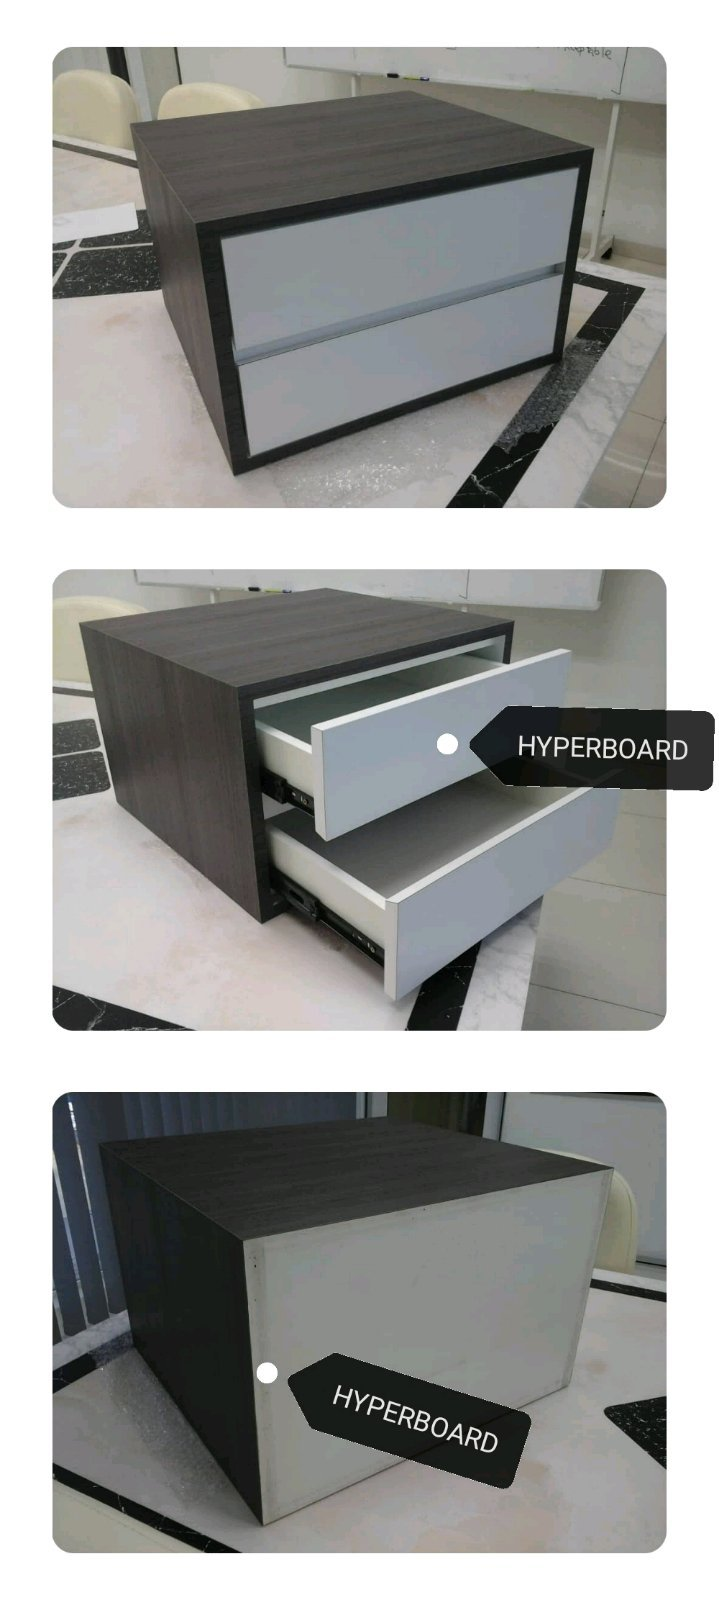 Hyperboard - Replace Plywood MDF